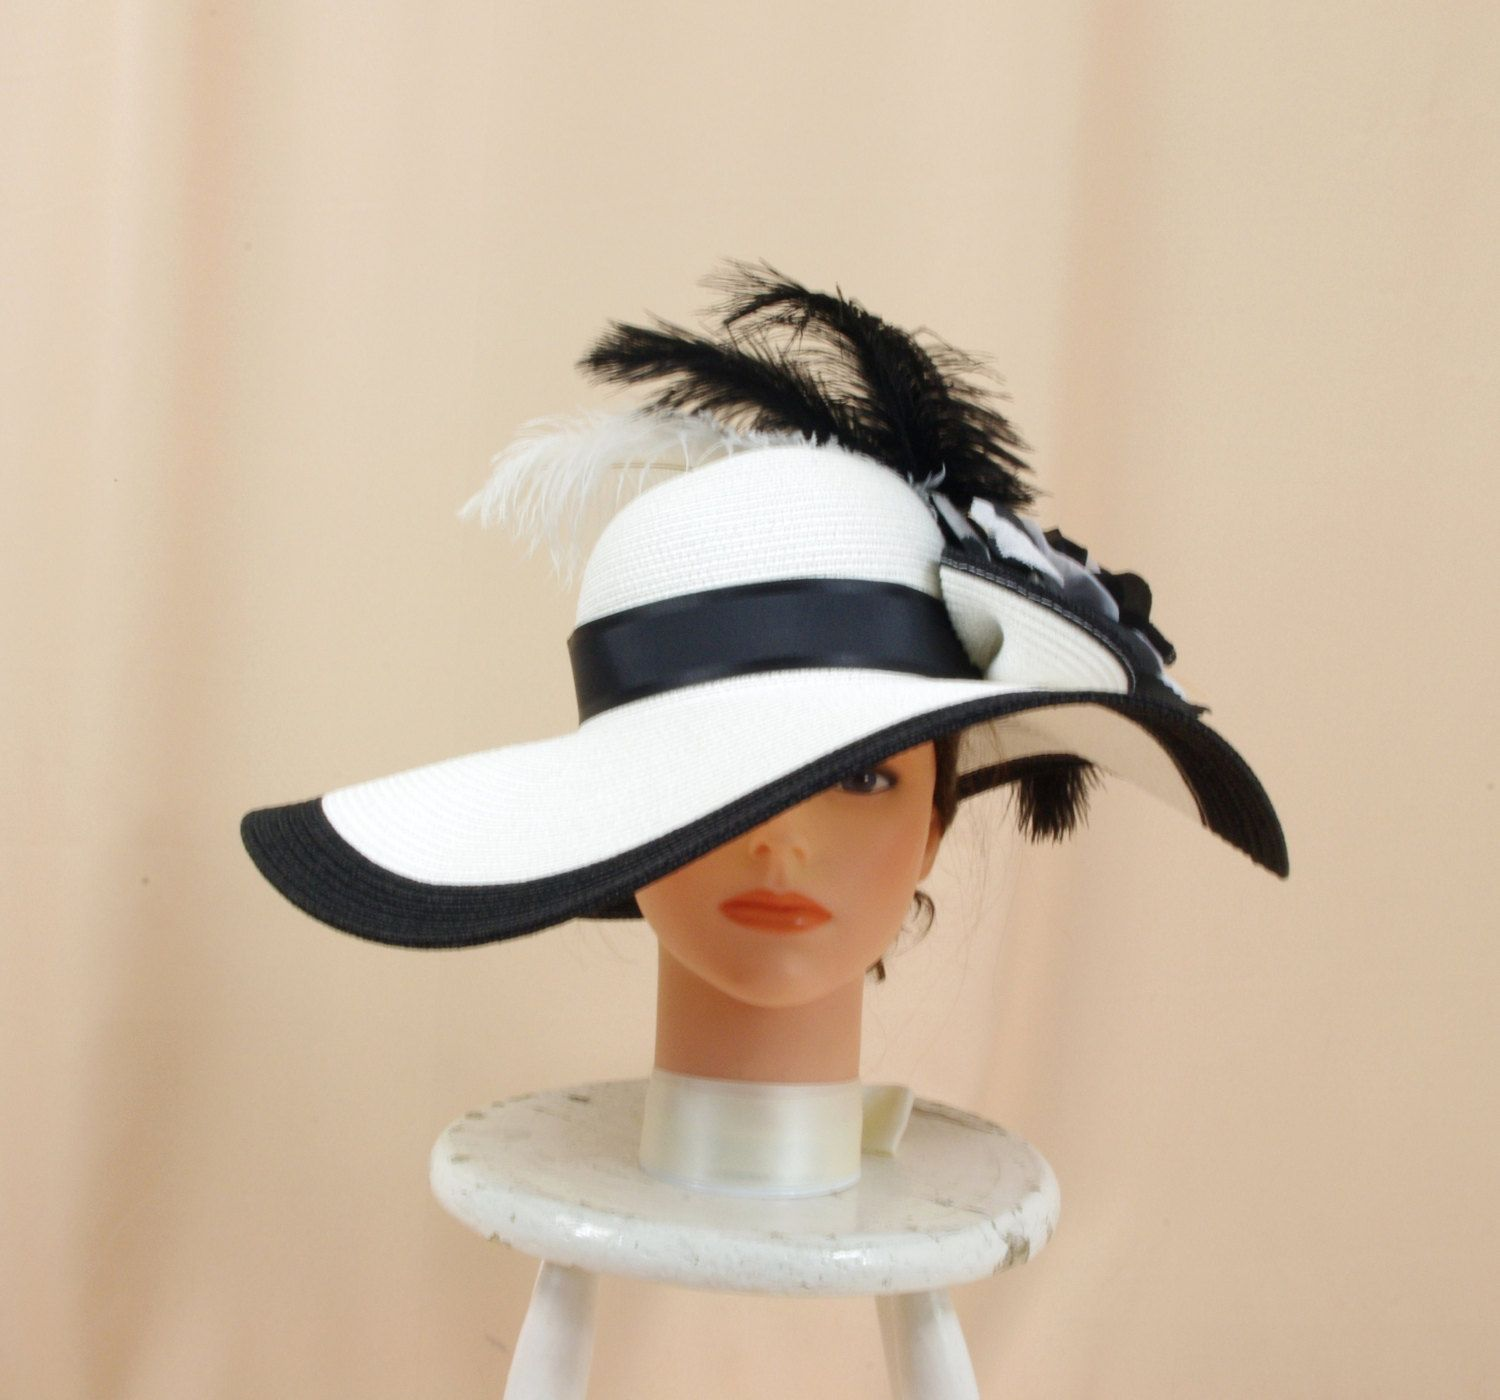 c798e4ce5b1 Extra Wide Brim Hat   Black and White Hat   White Floppy Hat   Church Hat   Kentucky  Derby Hat   Floral Hat   Ascot Hat   Derby Hat by englishrosedesignsoh ...